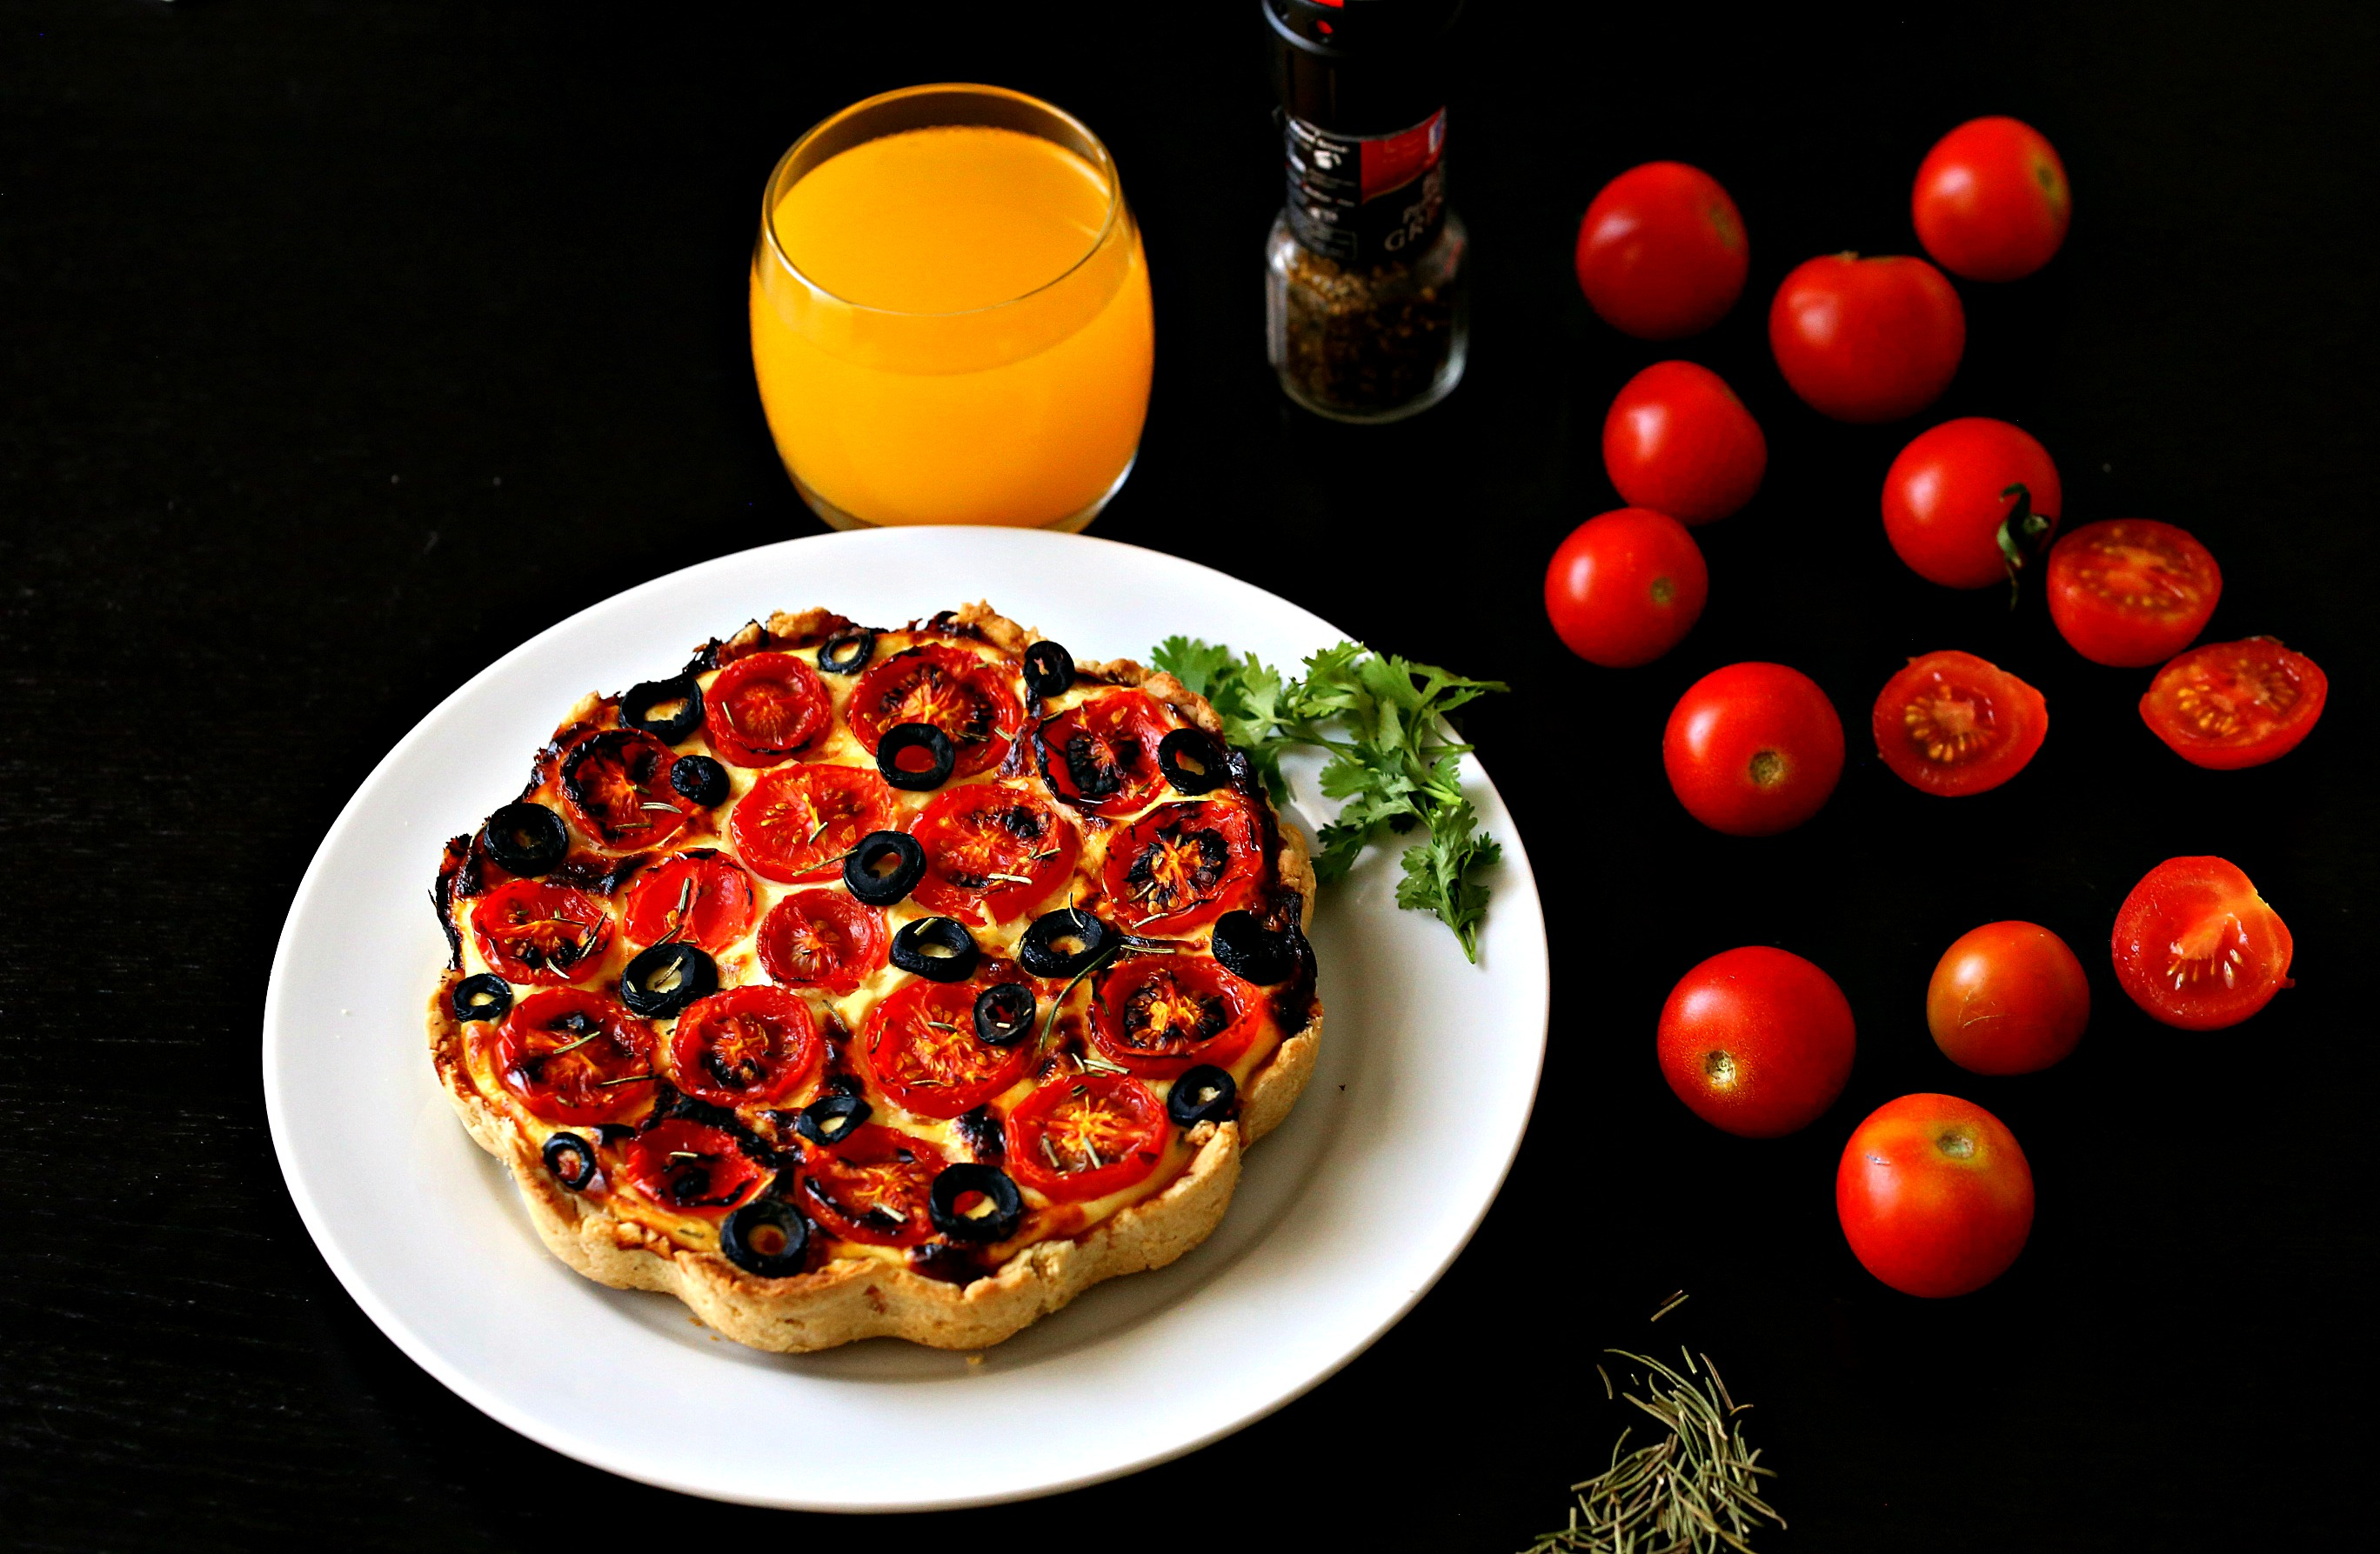 tomato tart with sharp flavors of black olive, rosemary and Parmesan ...